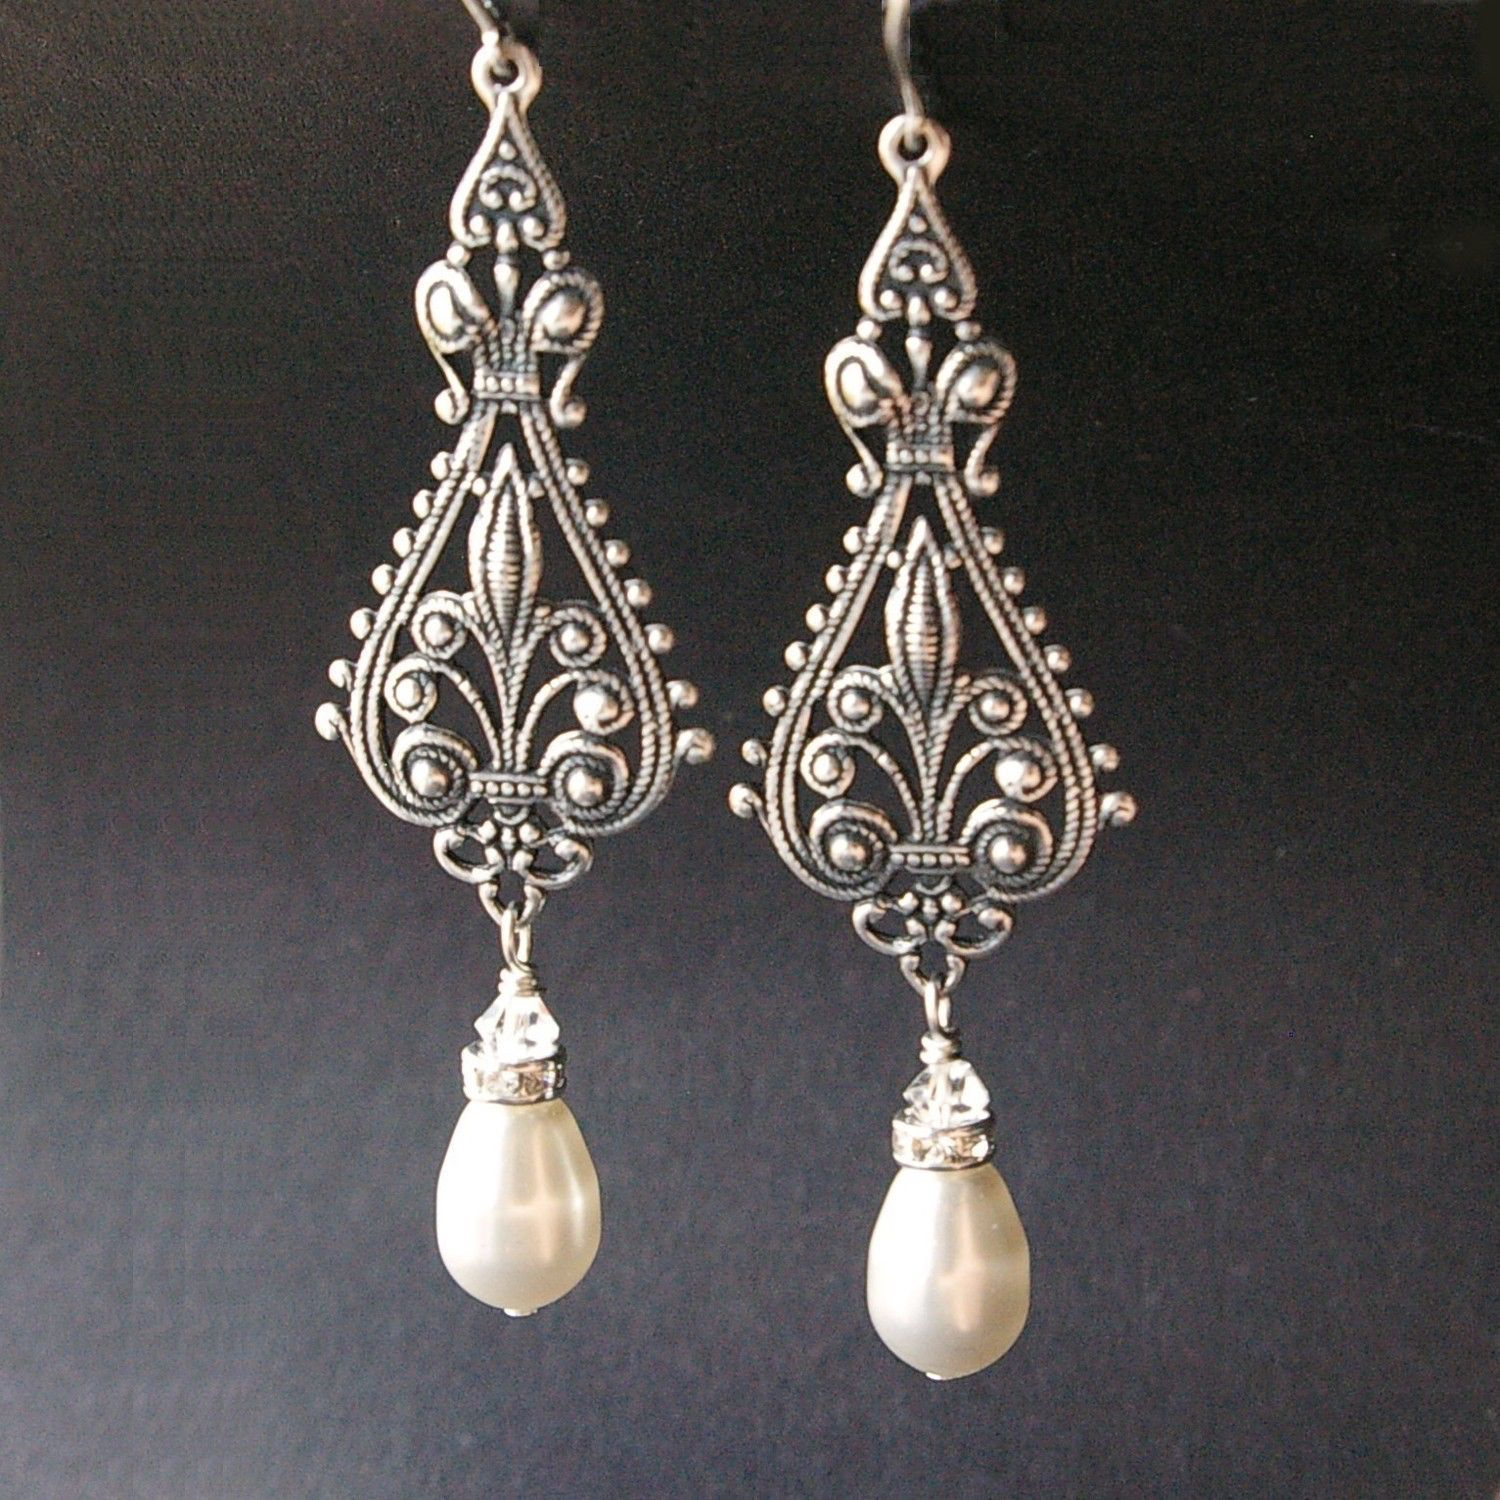 leaves free jewelry handmade product feathered shipping watches silver thailand filigree earrings overstock sterling today